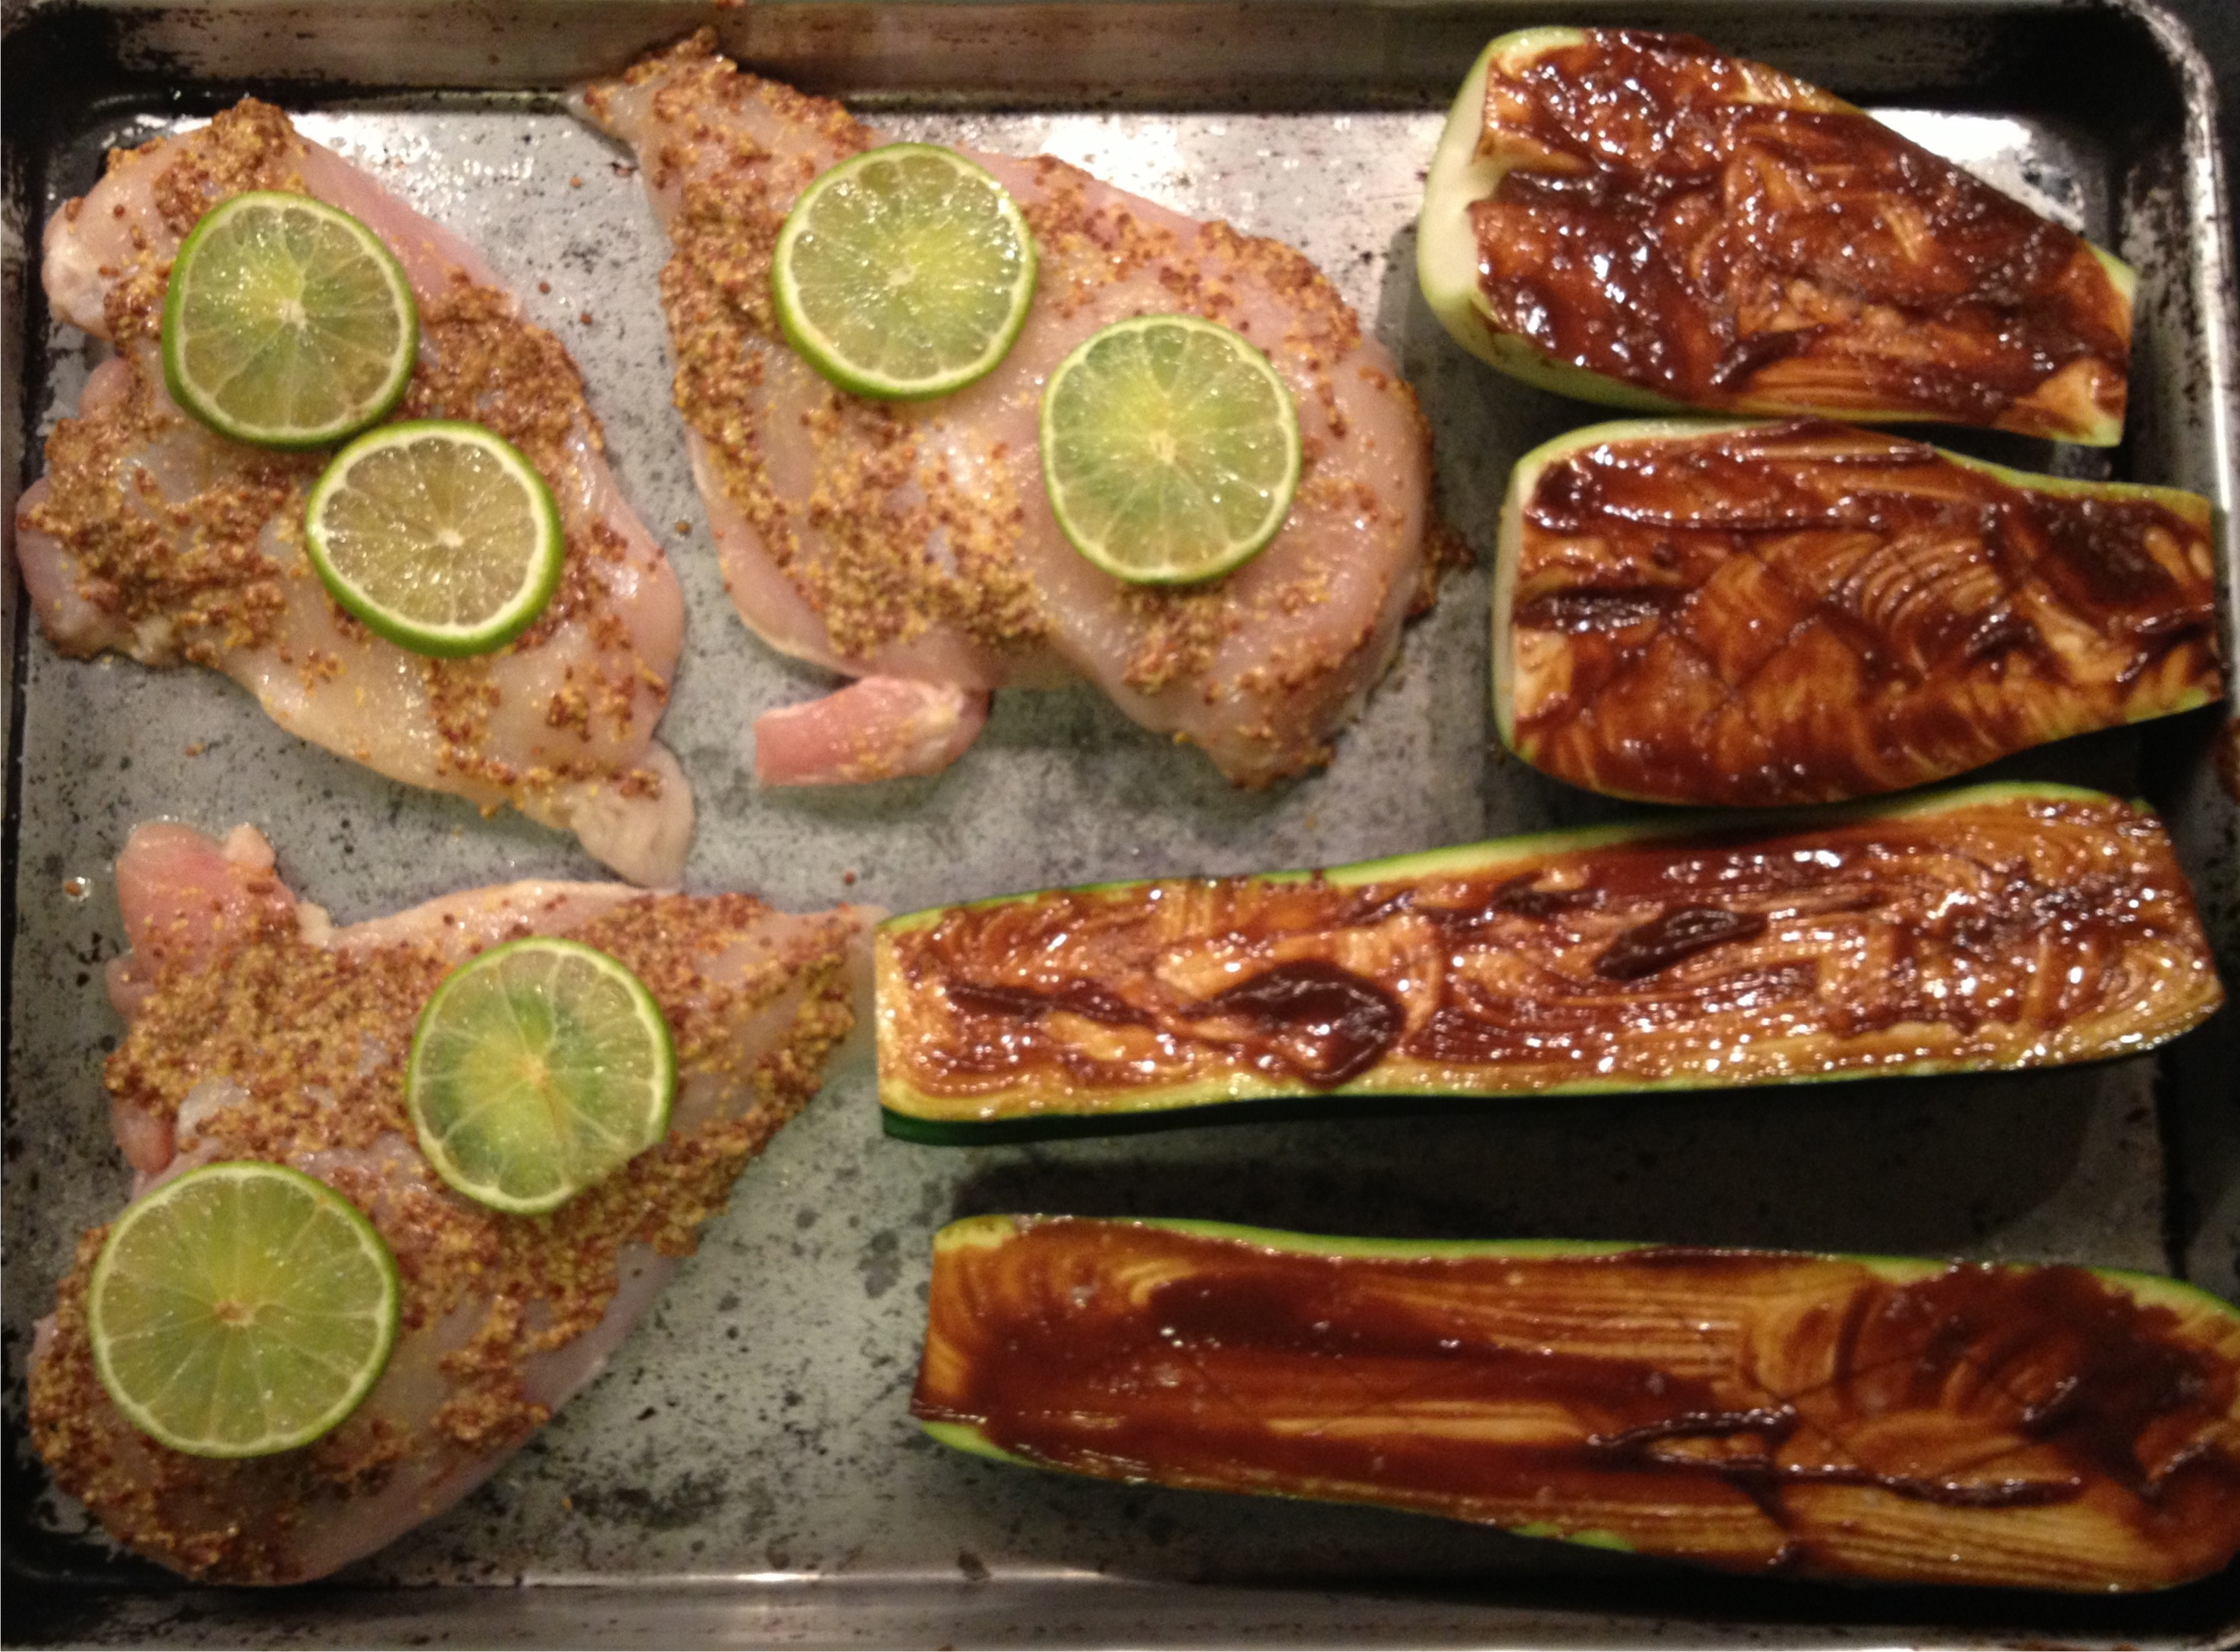 Tarmarind squash and raw mustard-coated chicken breasts with jalapeno and lime slices on a baking sheet.